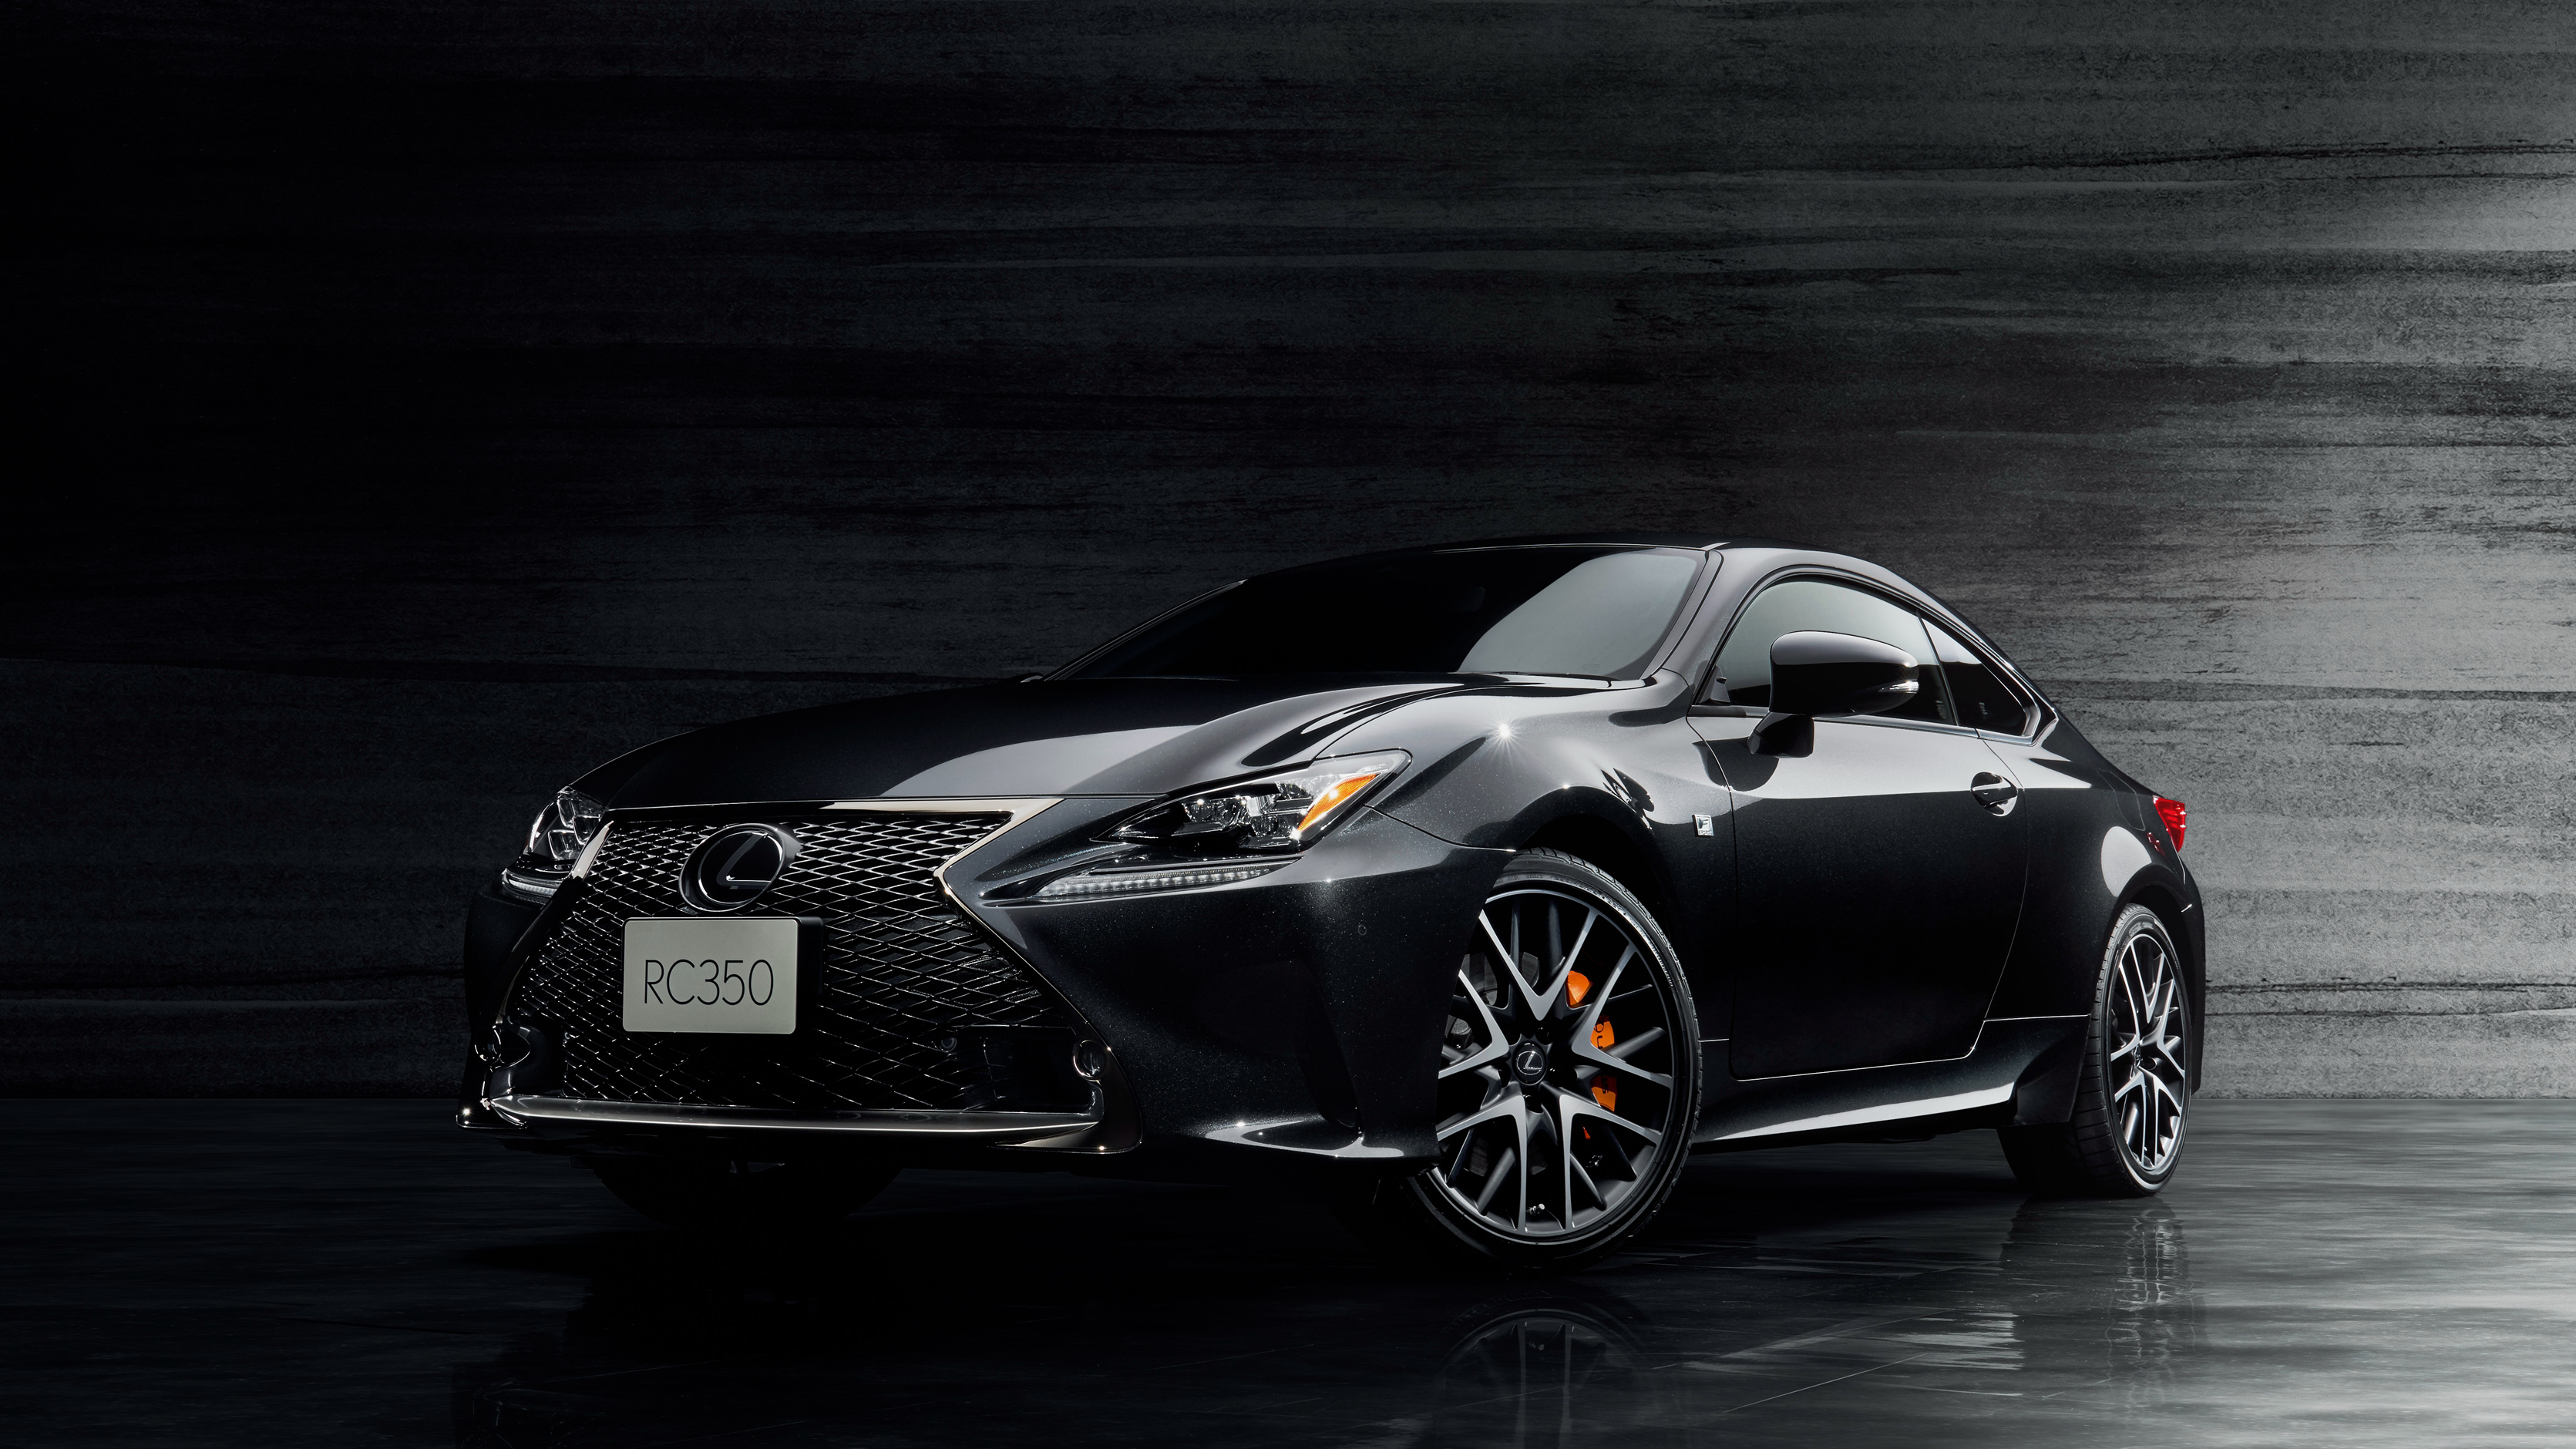 Prime Acura North >> 2017 Lexus RC 350 F SPORT Prime Black Wallpaper | HD Car Wallpapers | ID #9177